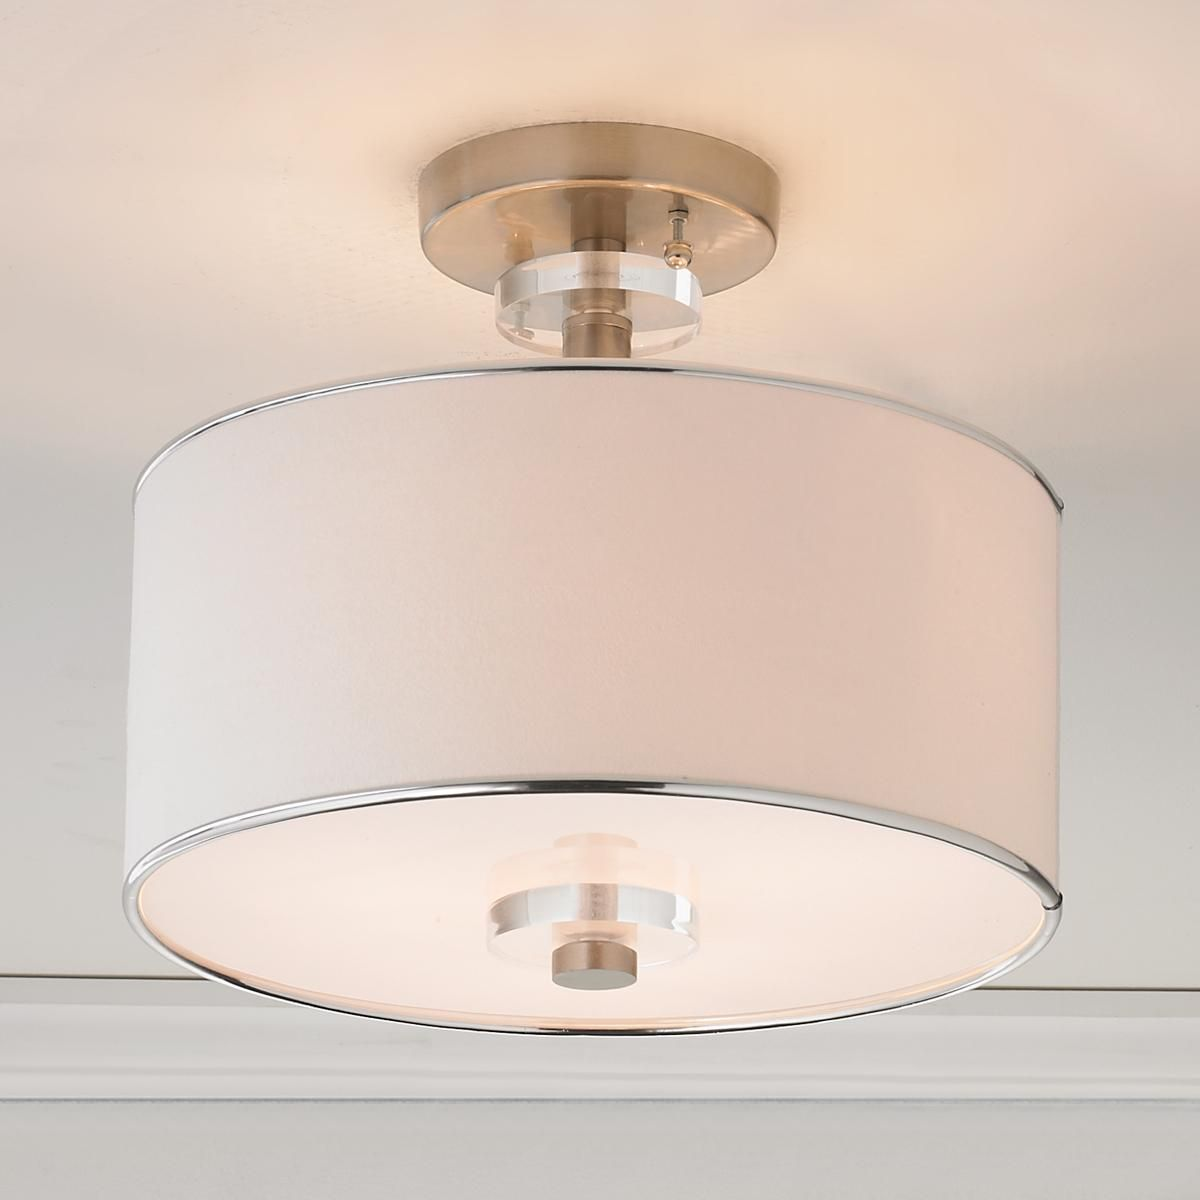 Modern Sleek Semi-Flush Ceiling Light | Schlafzimmer